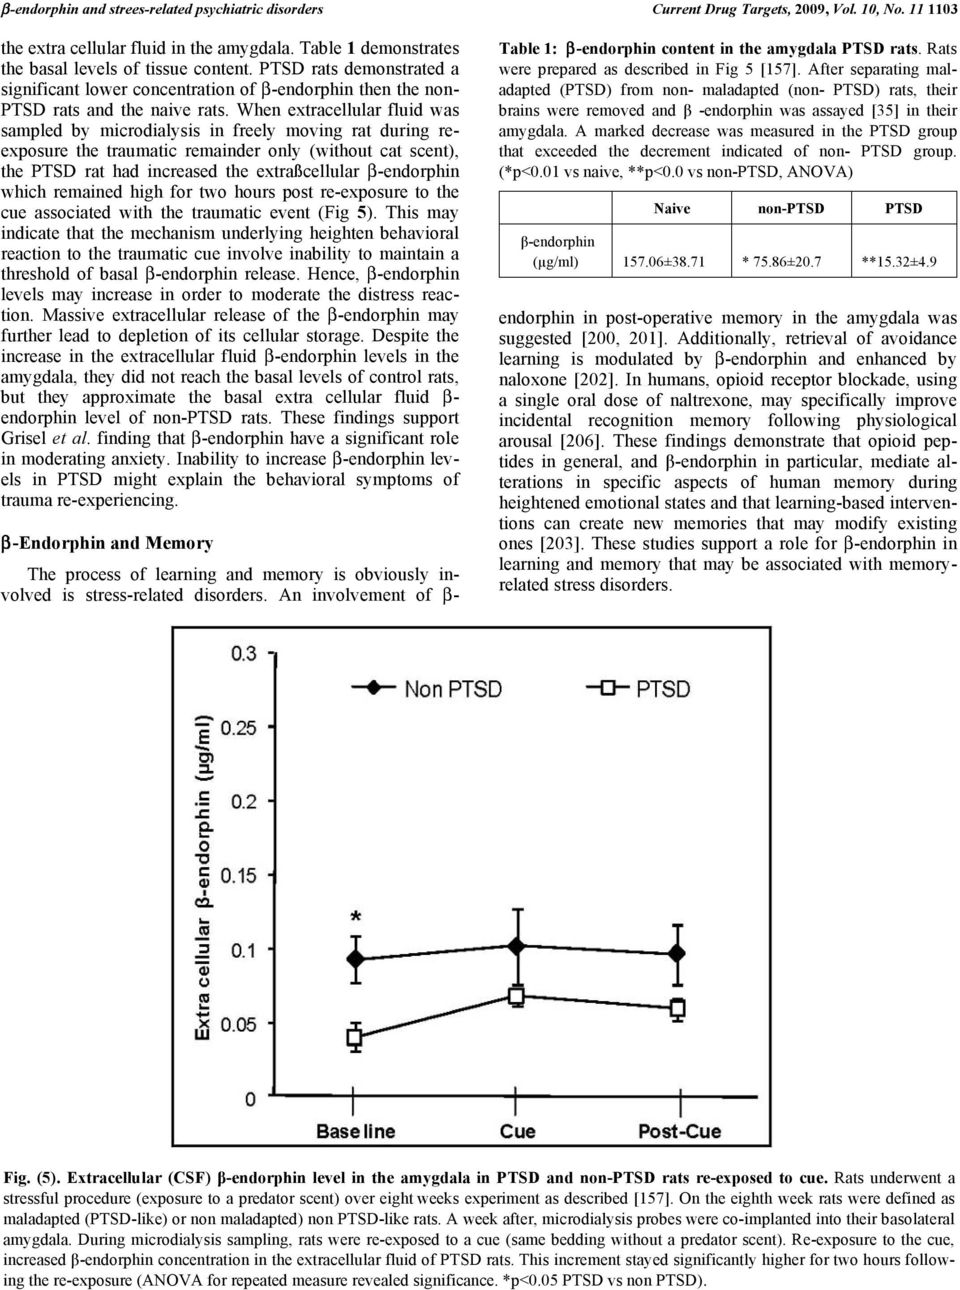 When extracellular fluid was sampled by microdialysis in freely moving rat during reexposure the traumatic remainder only (without cat scent), the PTSD rat had increased the extraßcellular -endorphin